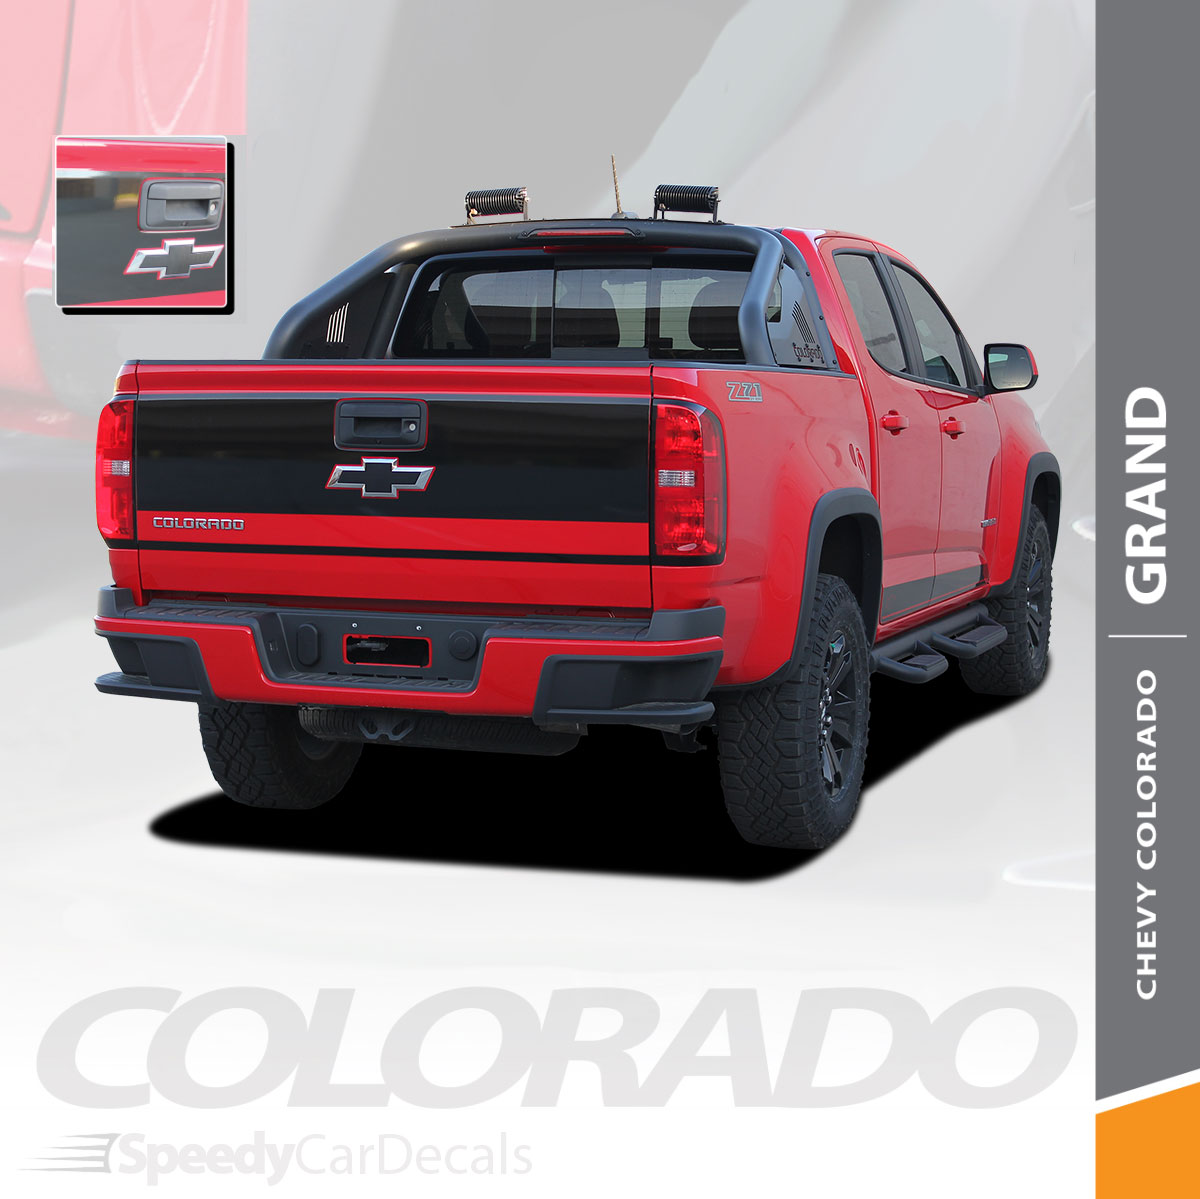 grand 2015 2019 chevy colorado rear tailgate blackout accent vinyl graphic package decal stripe  [ 1200 x 1199 Pixel ]